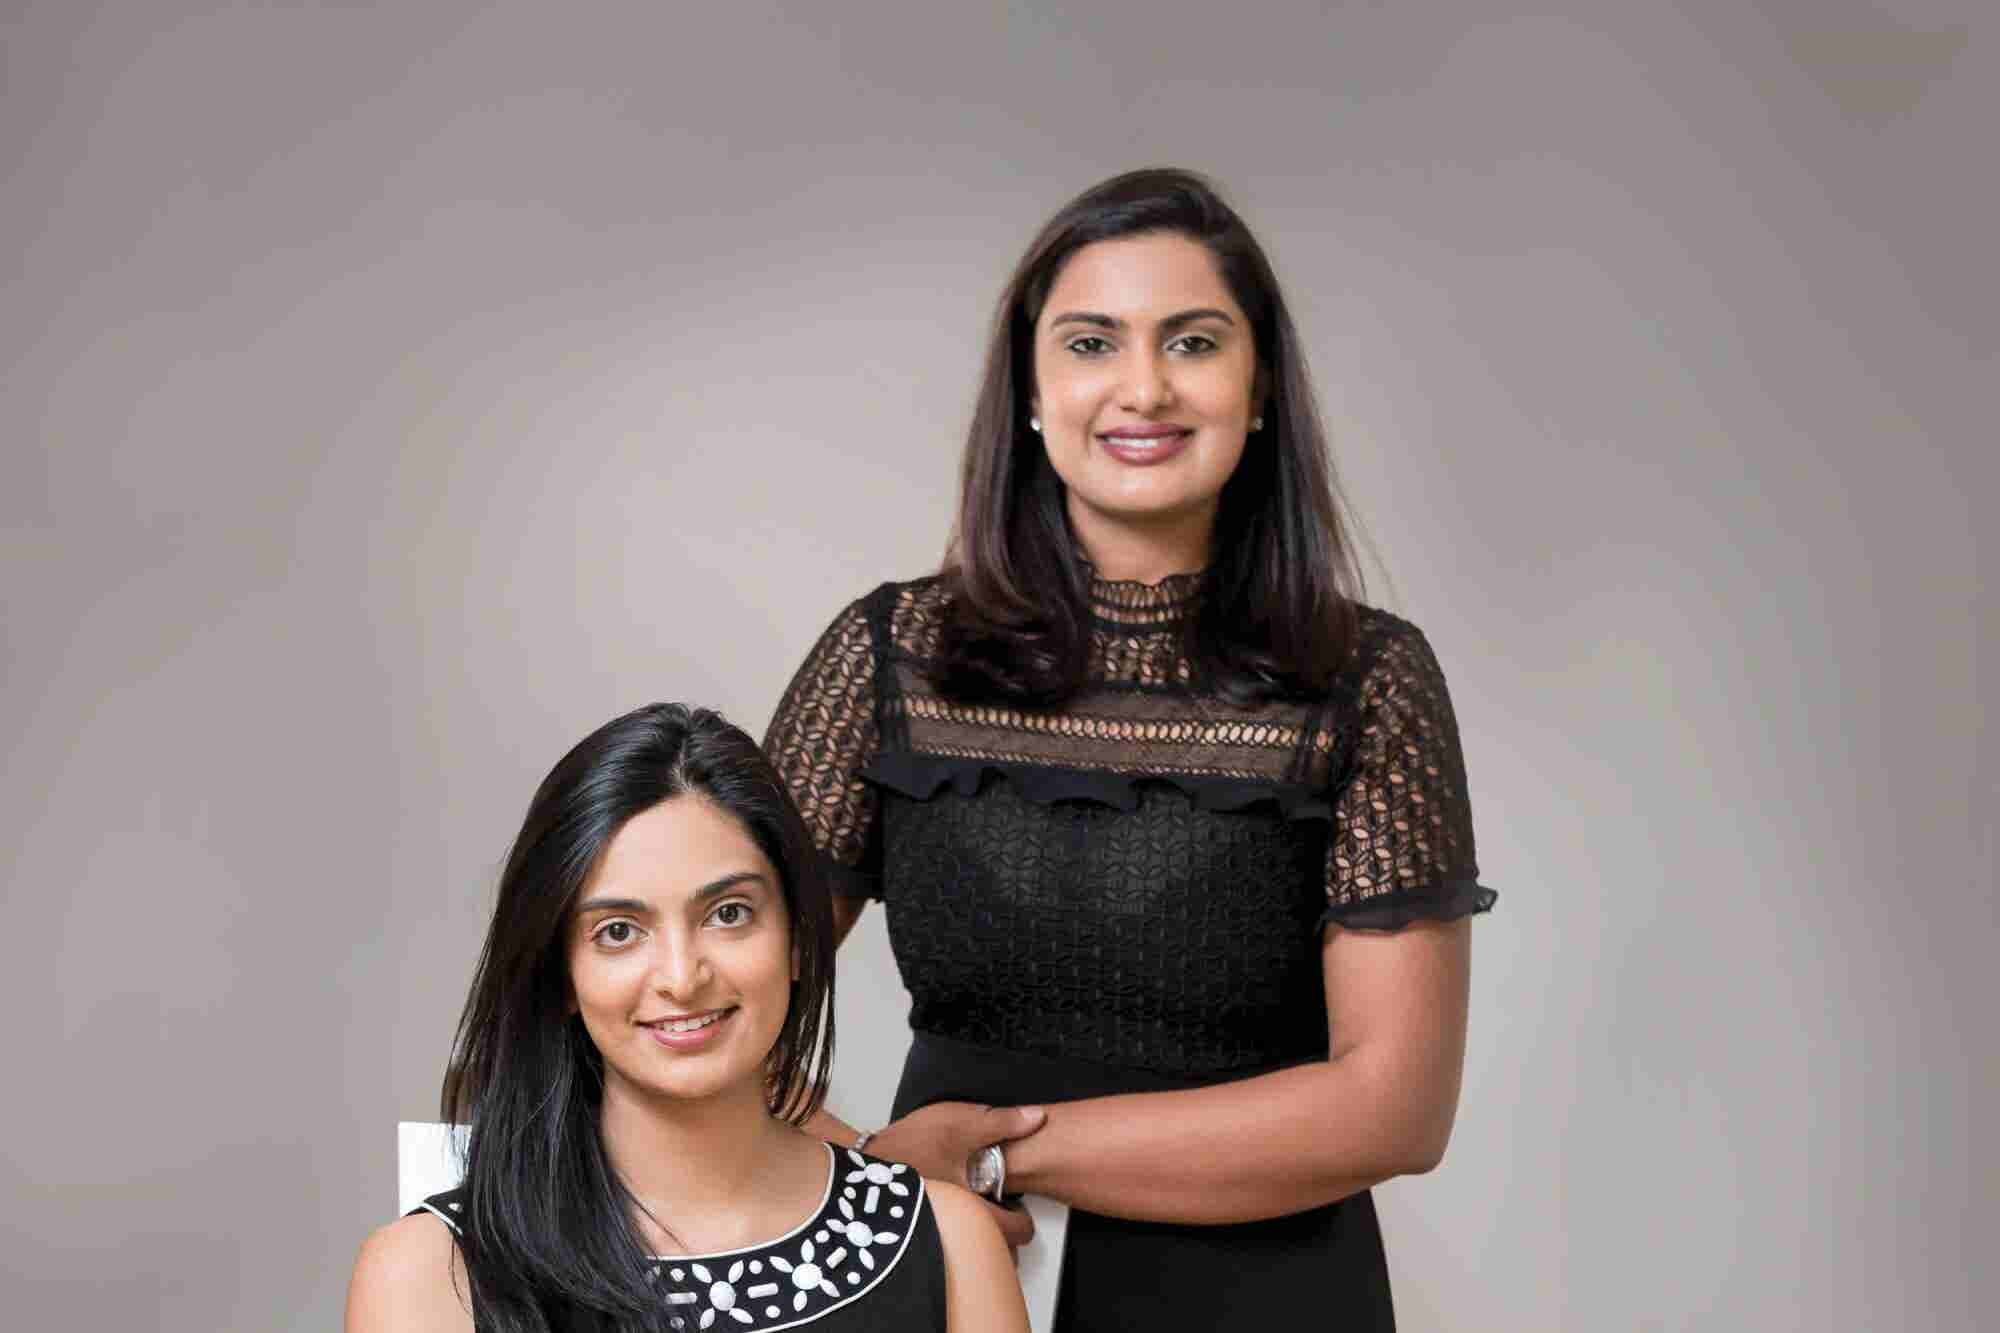 Nadia and Zahra Rawjee Are Helping Their Client's Access Funding - Here's How